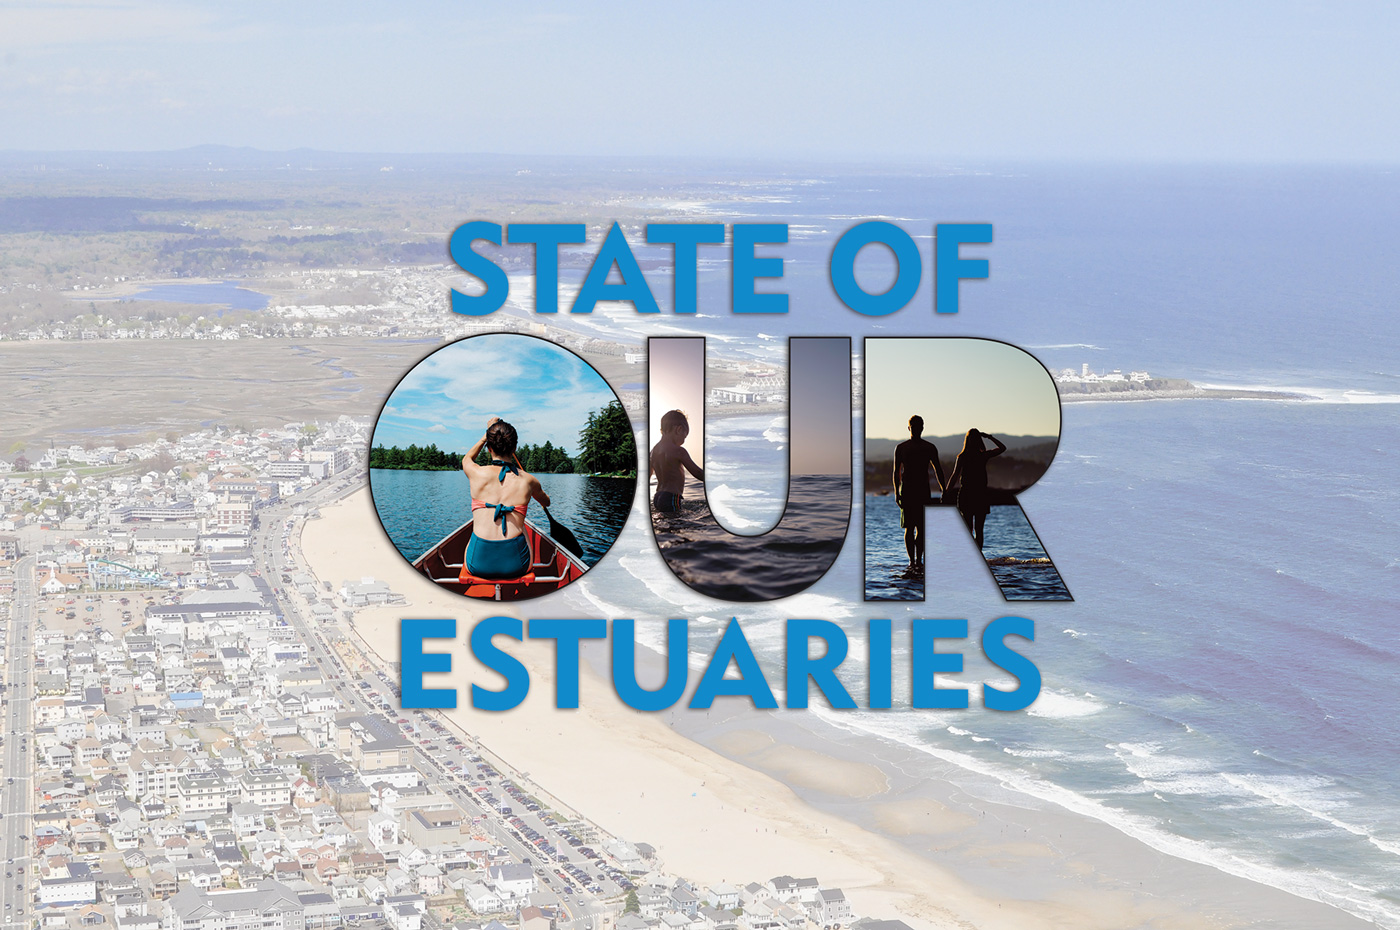 State of Our Estuaries Web Design Services